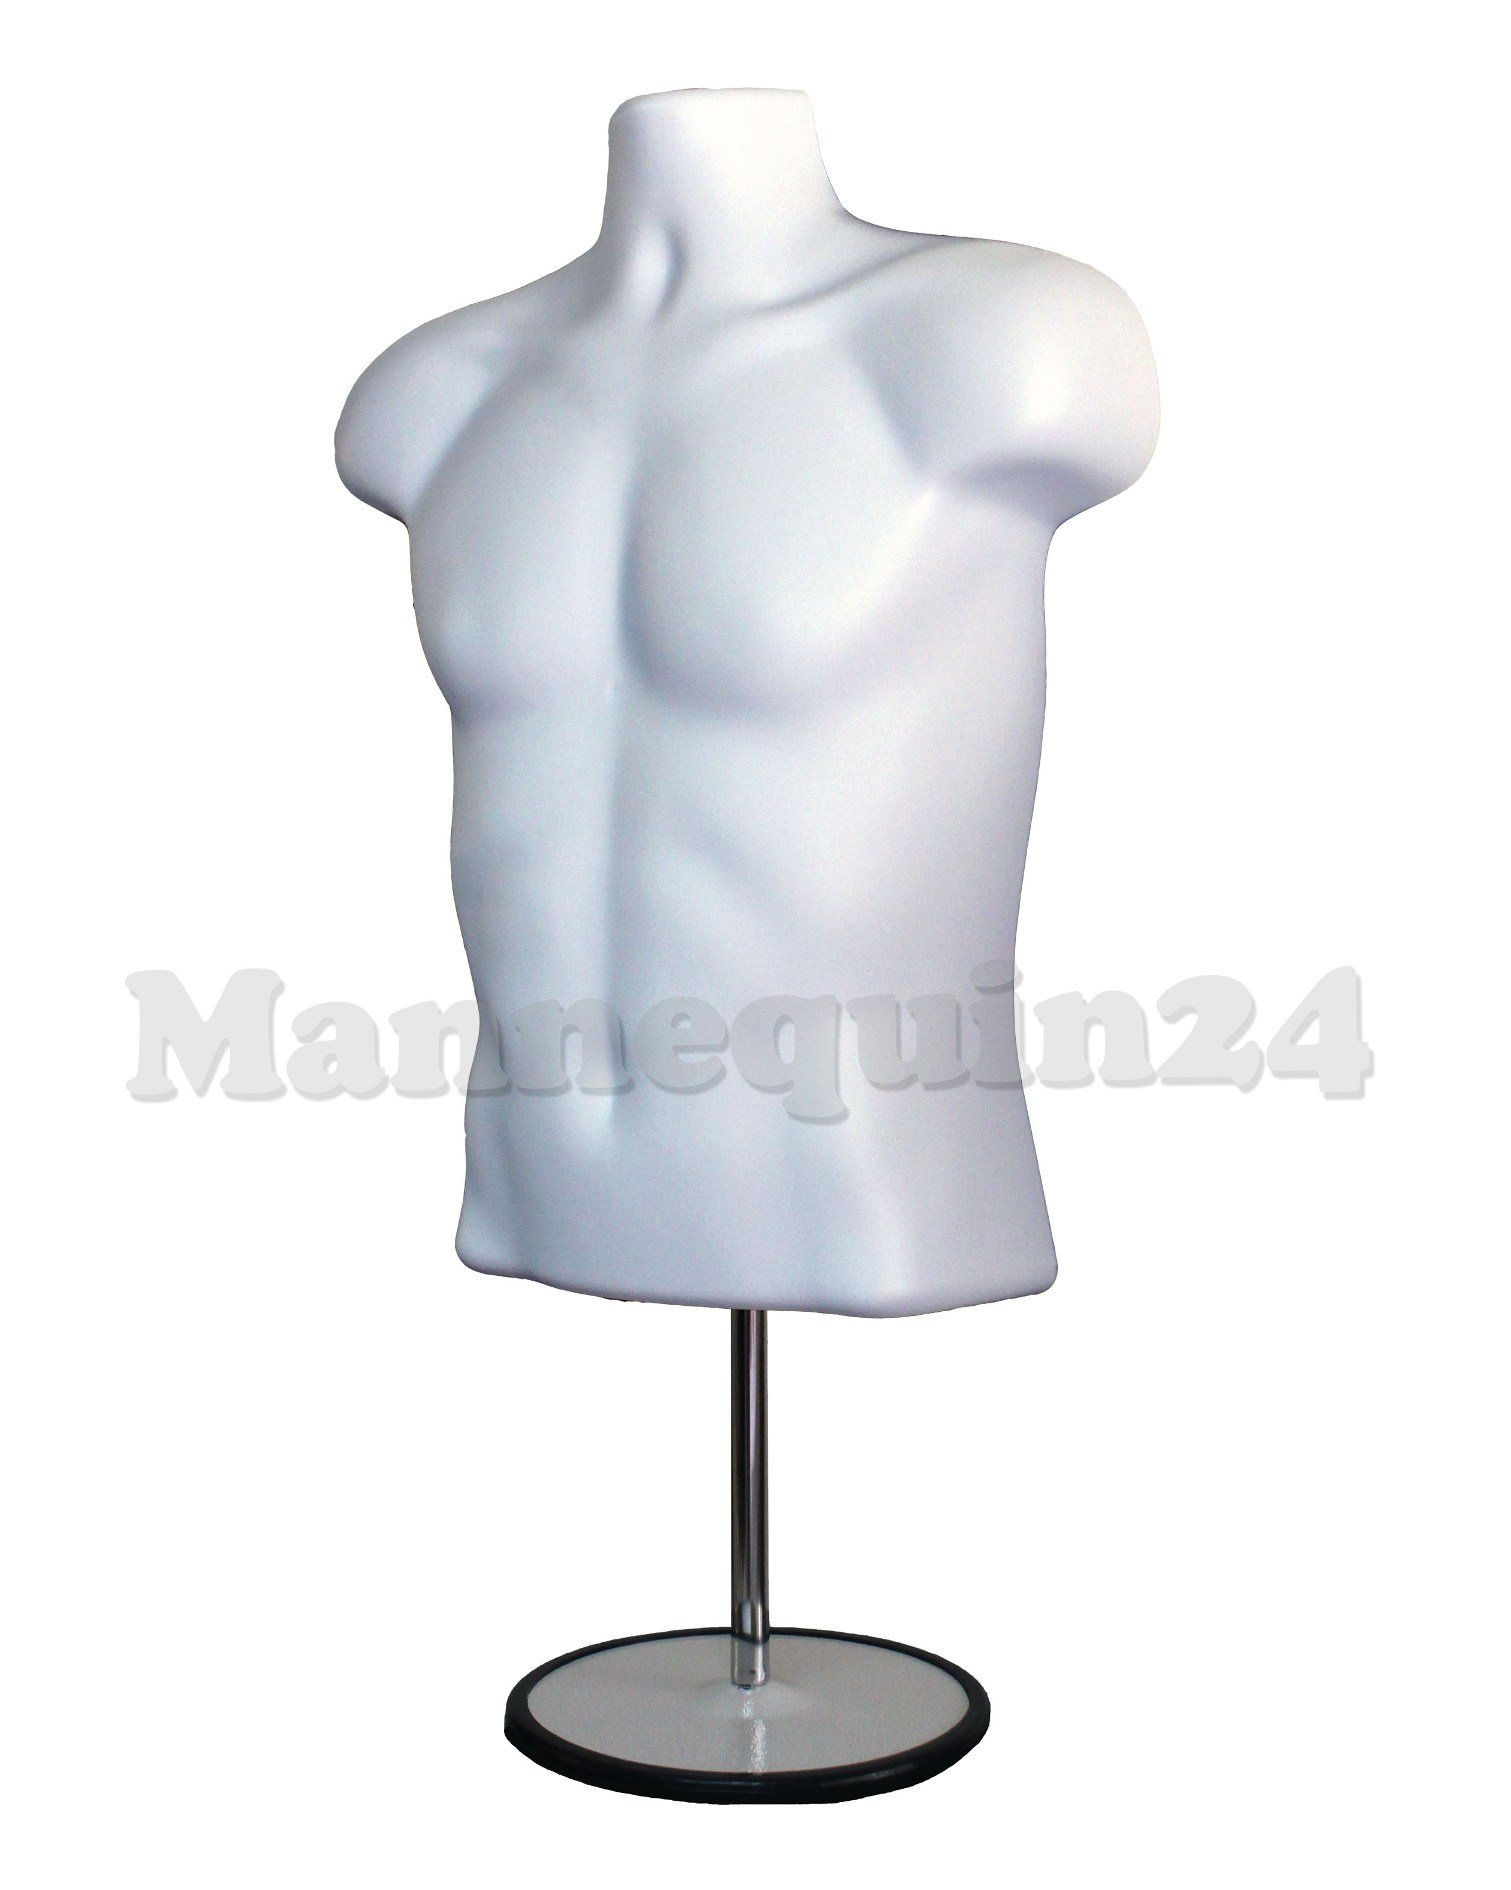 The Competitive Store Torso Male with Metal Base Body Mannequin, White